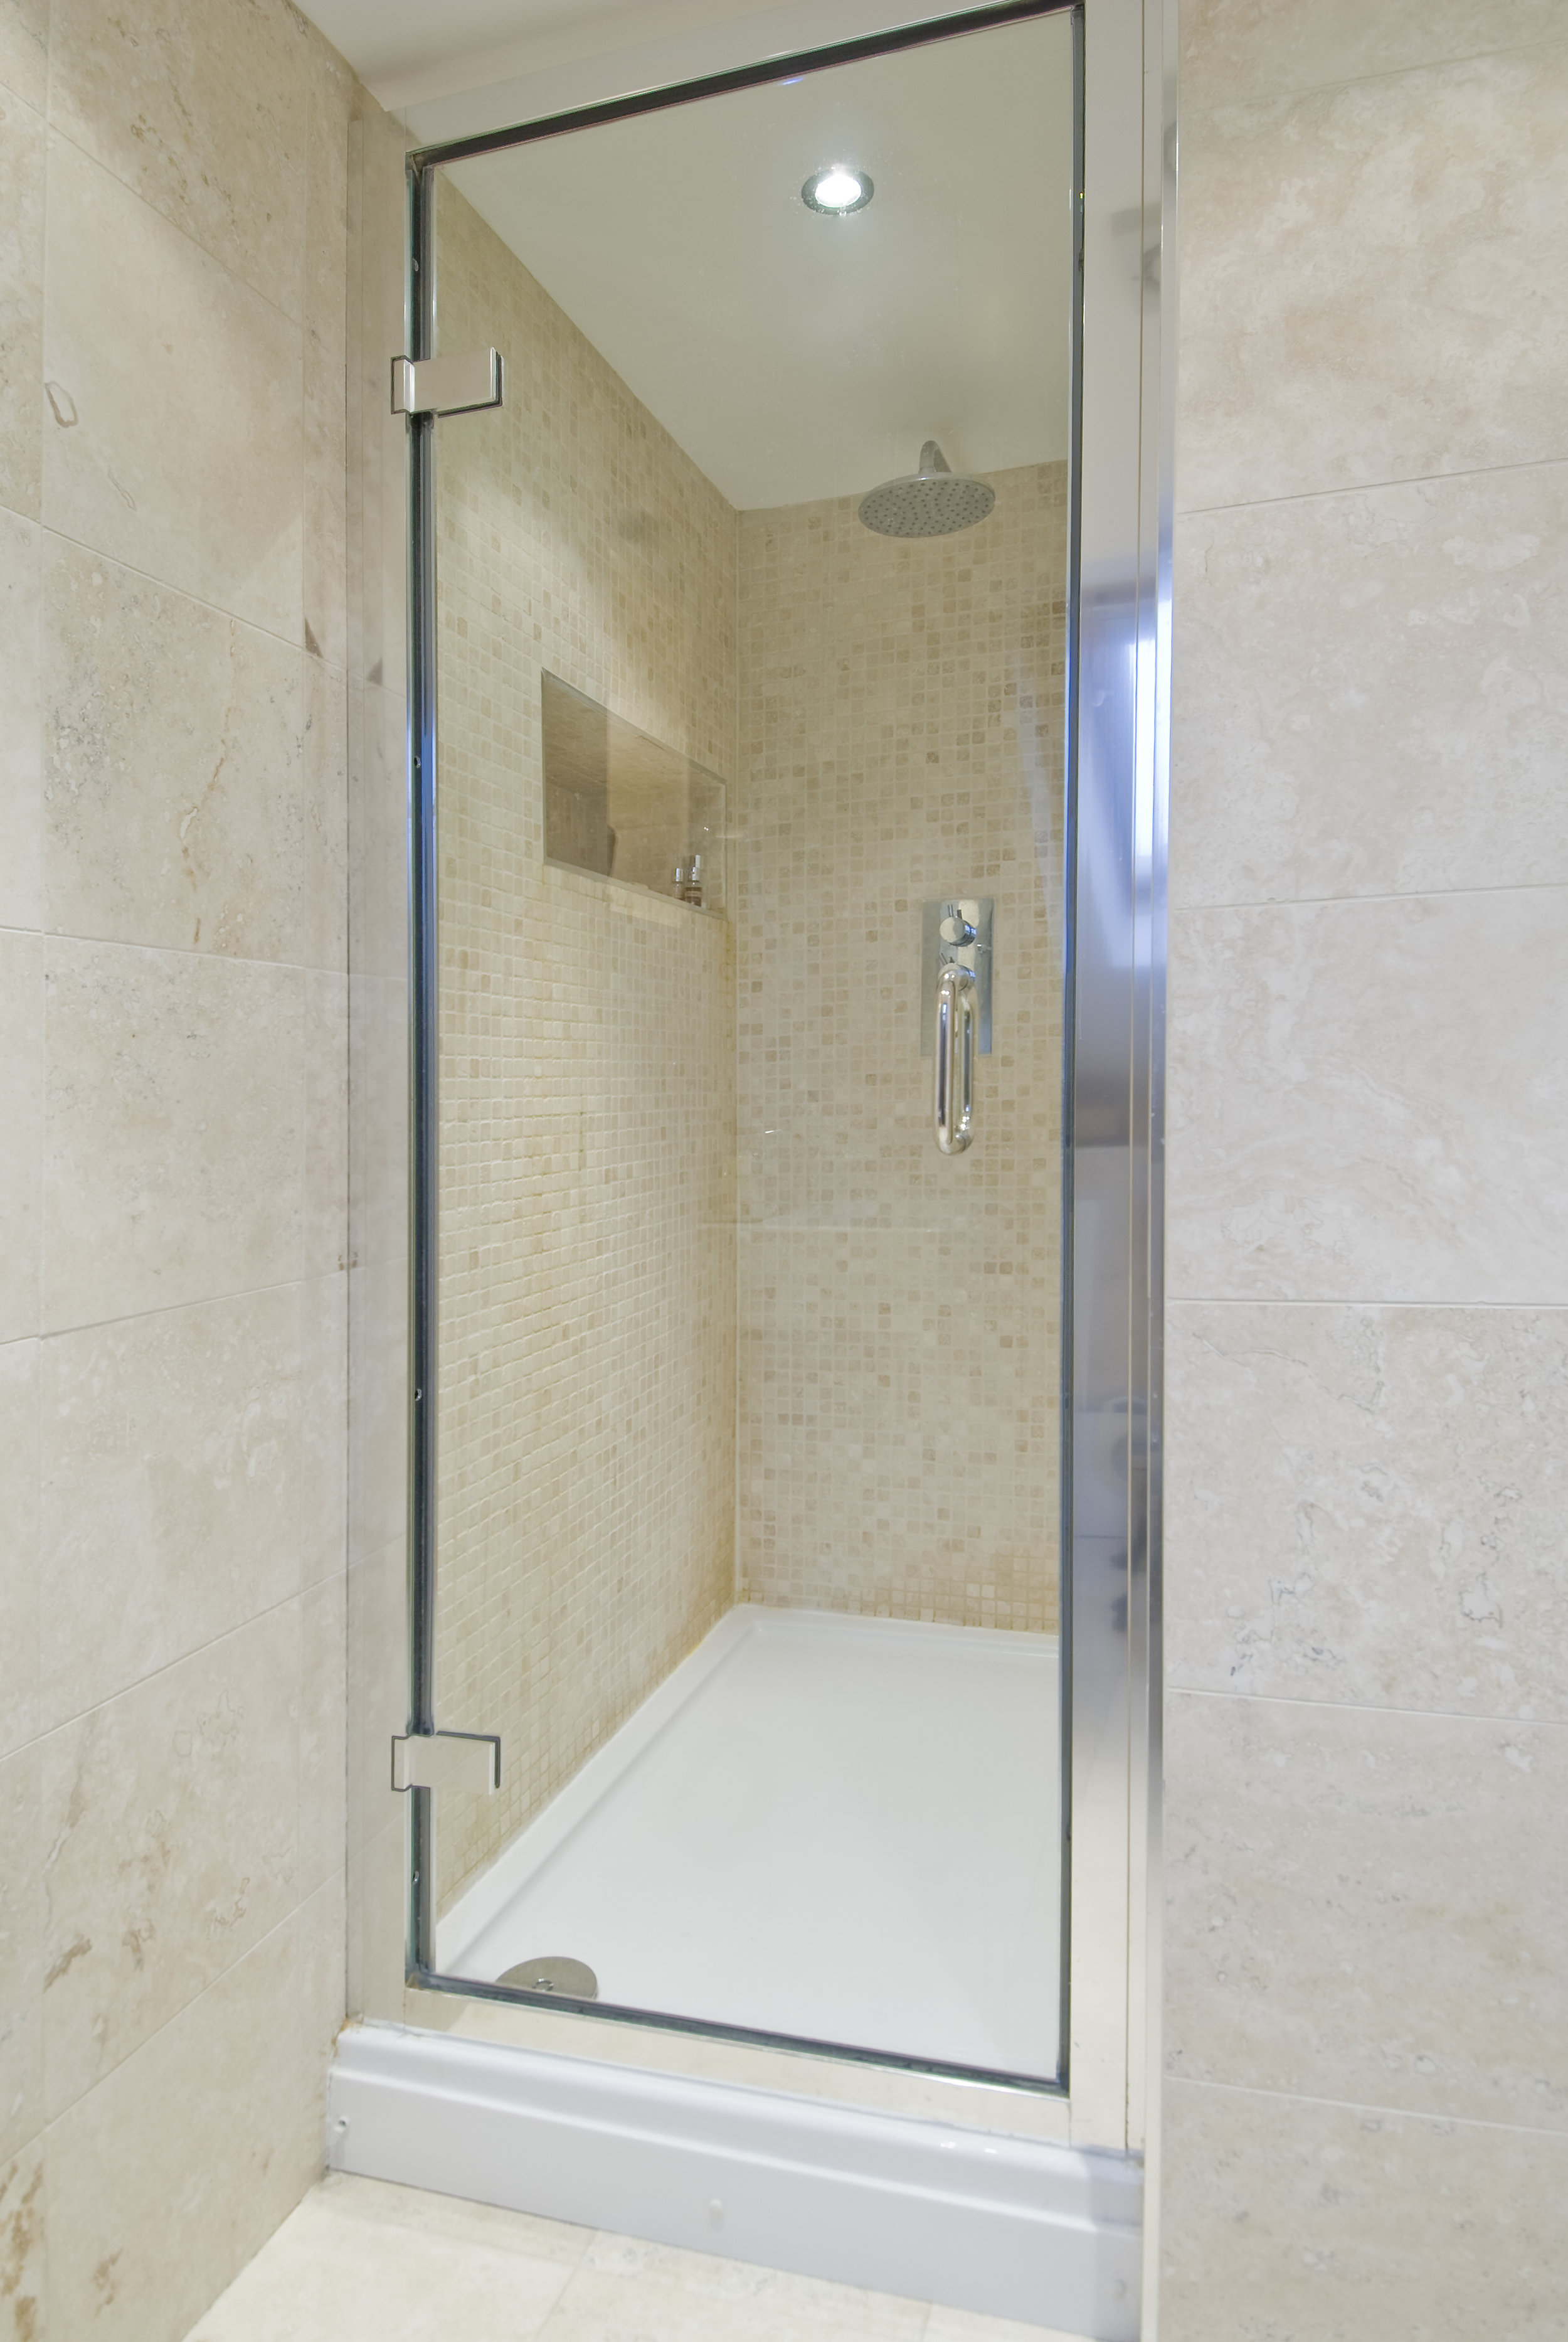 Shower room, Kew TW9, The Kitchen and Loft Company.